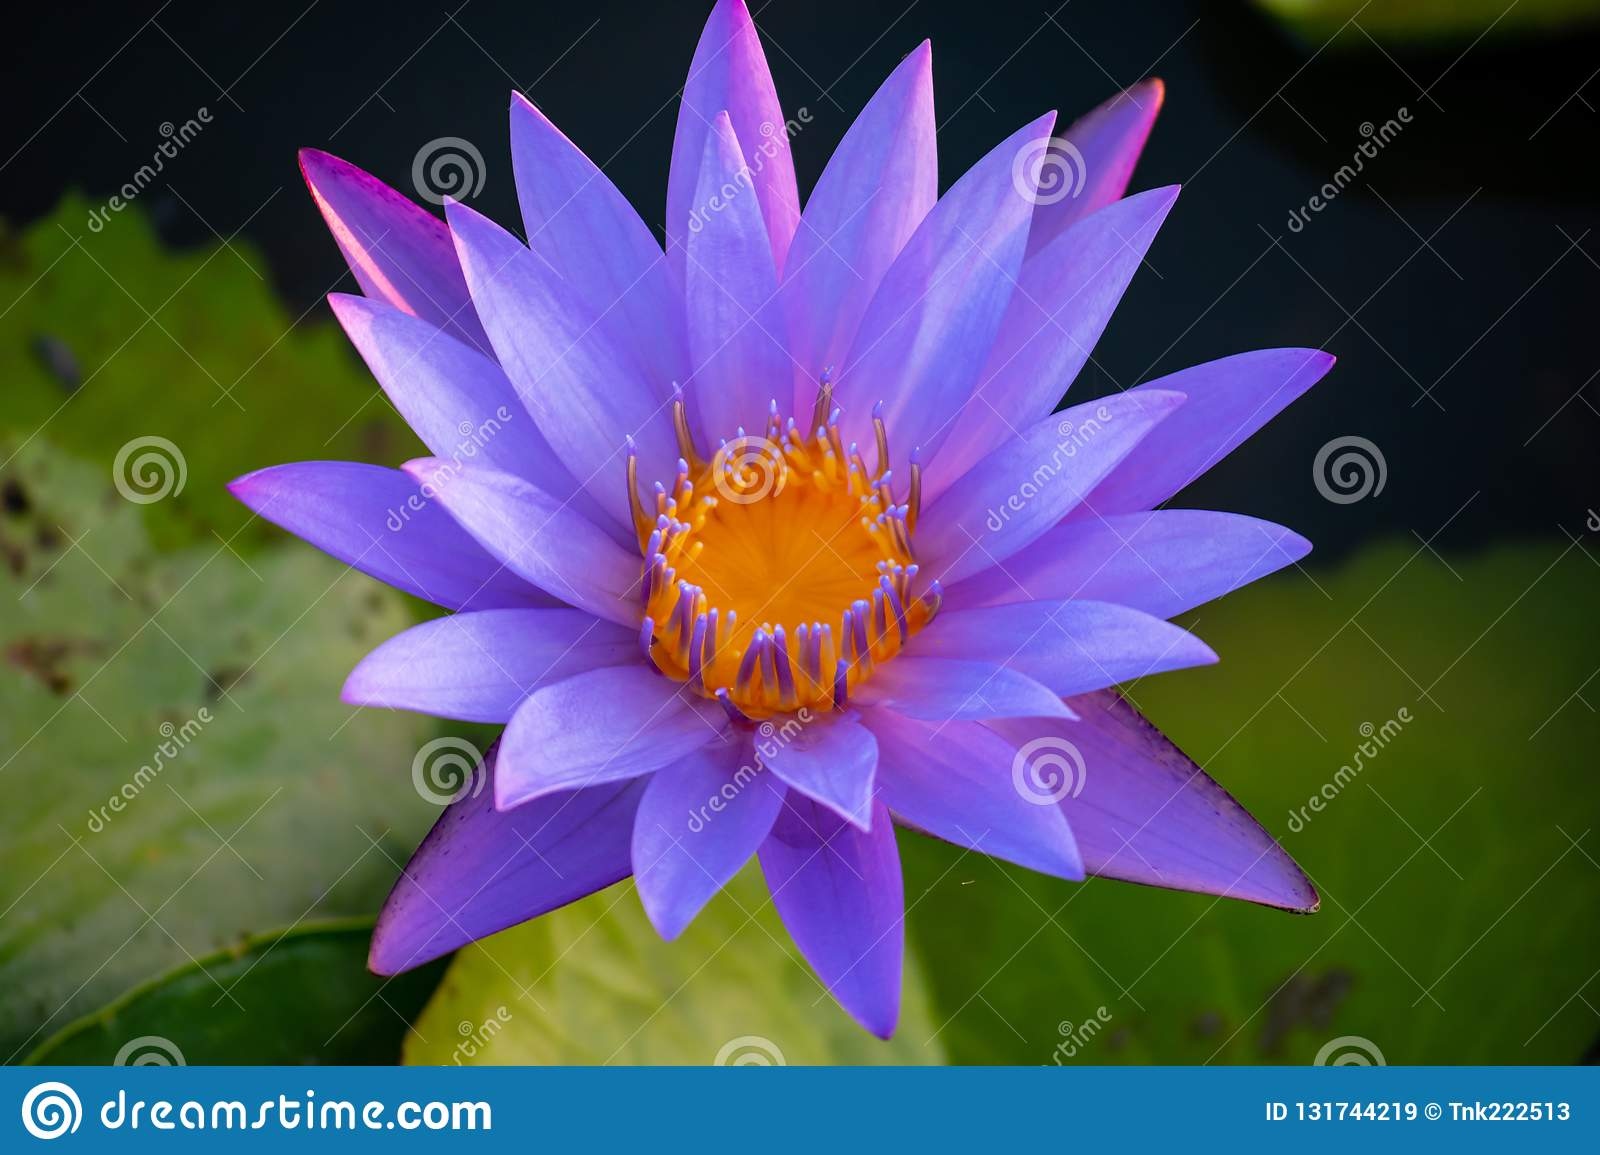 Purple Lotus Flower With Beautiful Sunlight Growing Up In The Garden